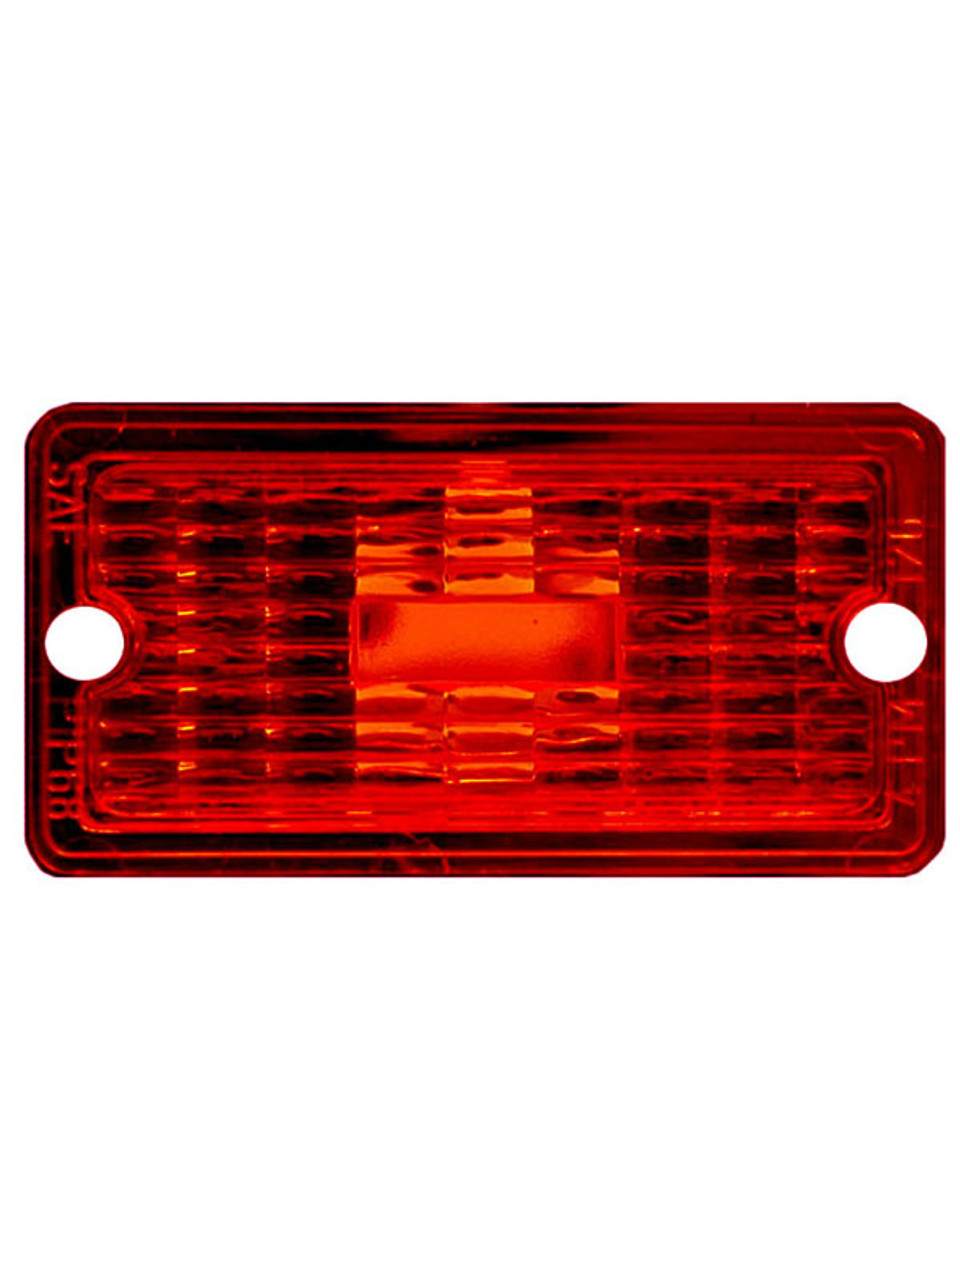 126-25R --- Peterson Replacement Red Rectangular Lens